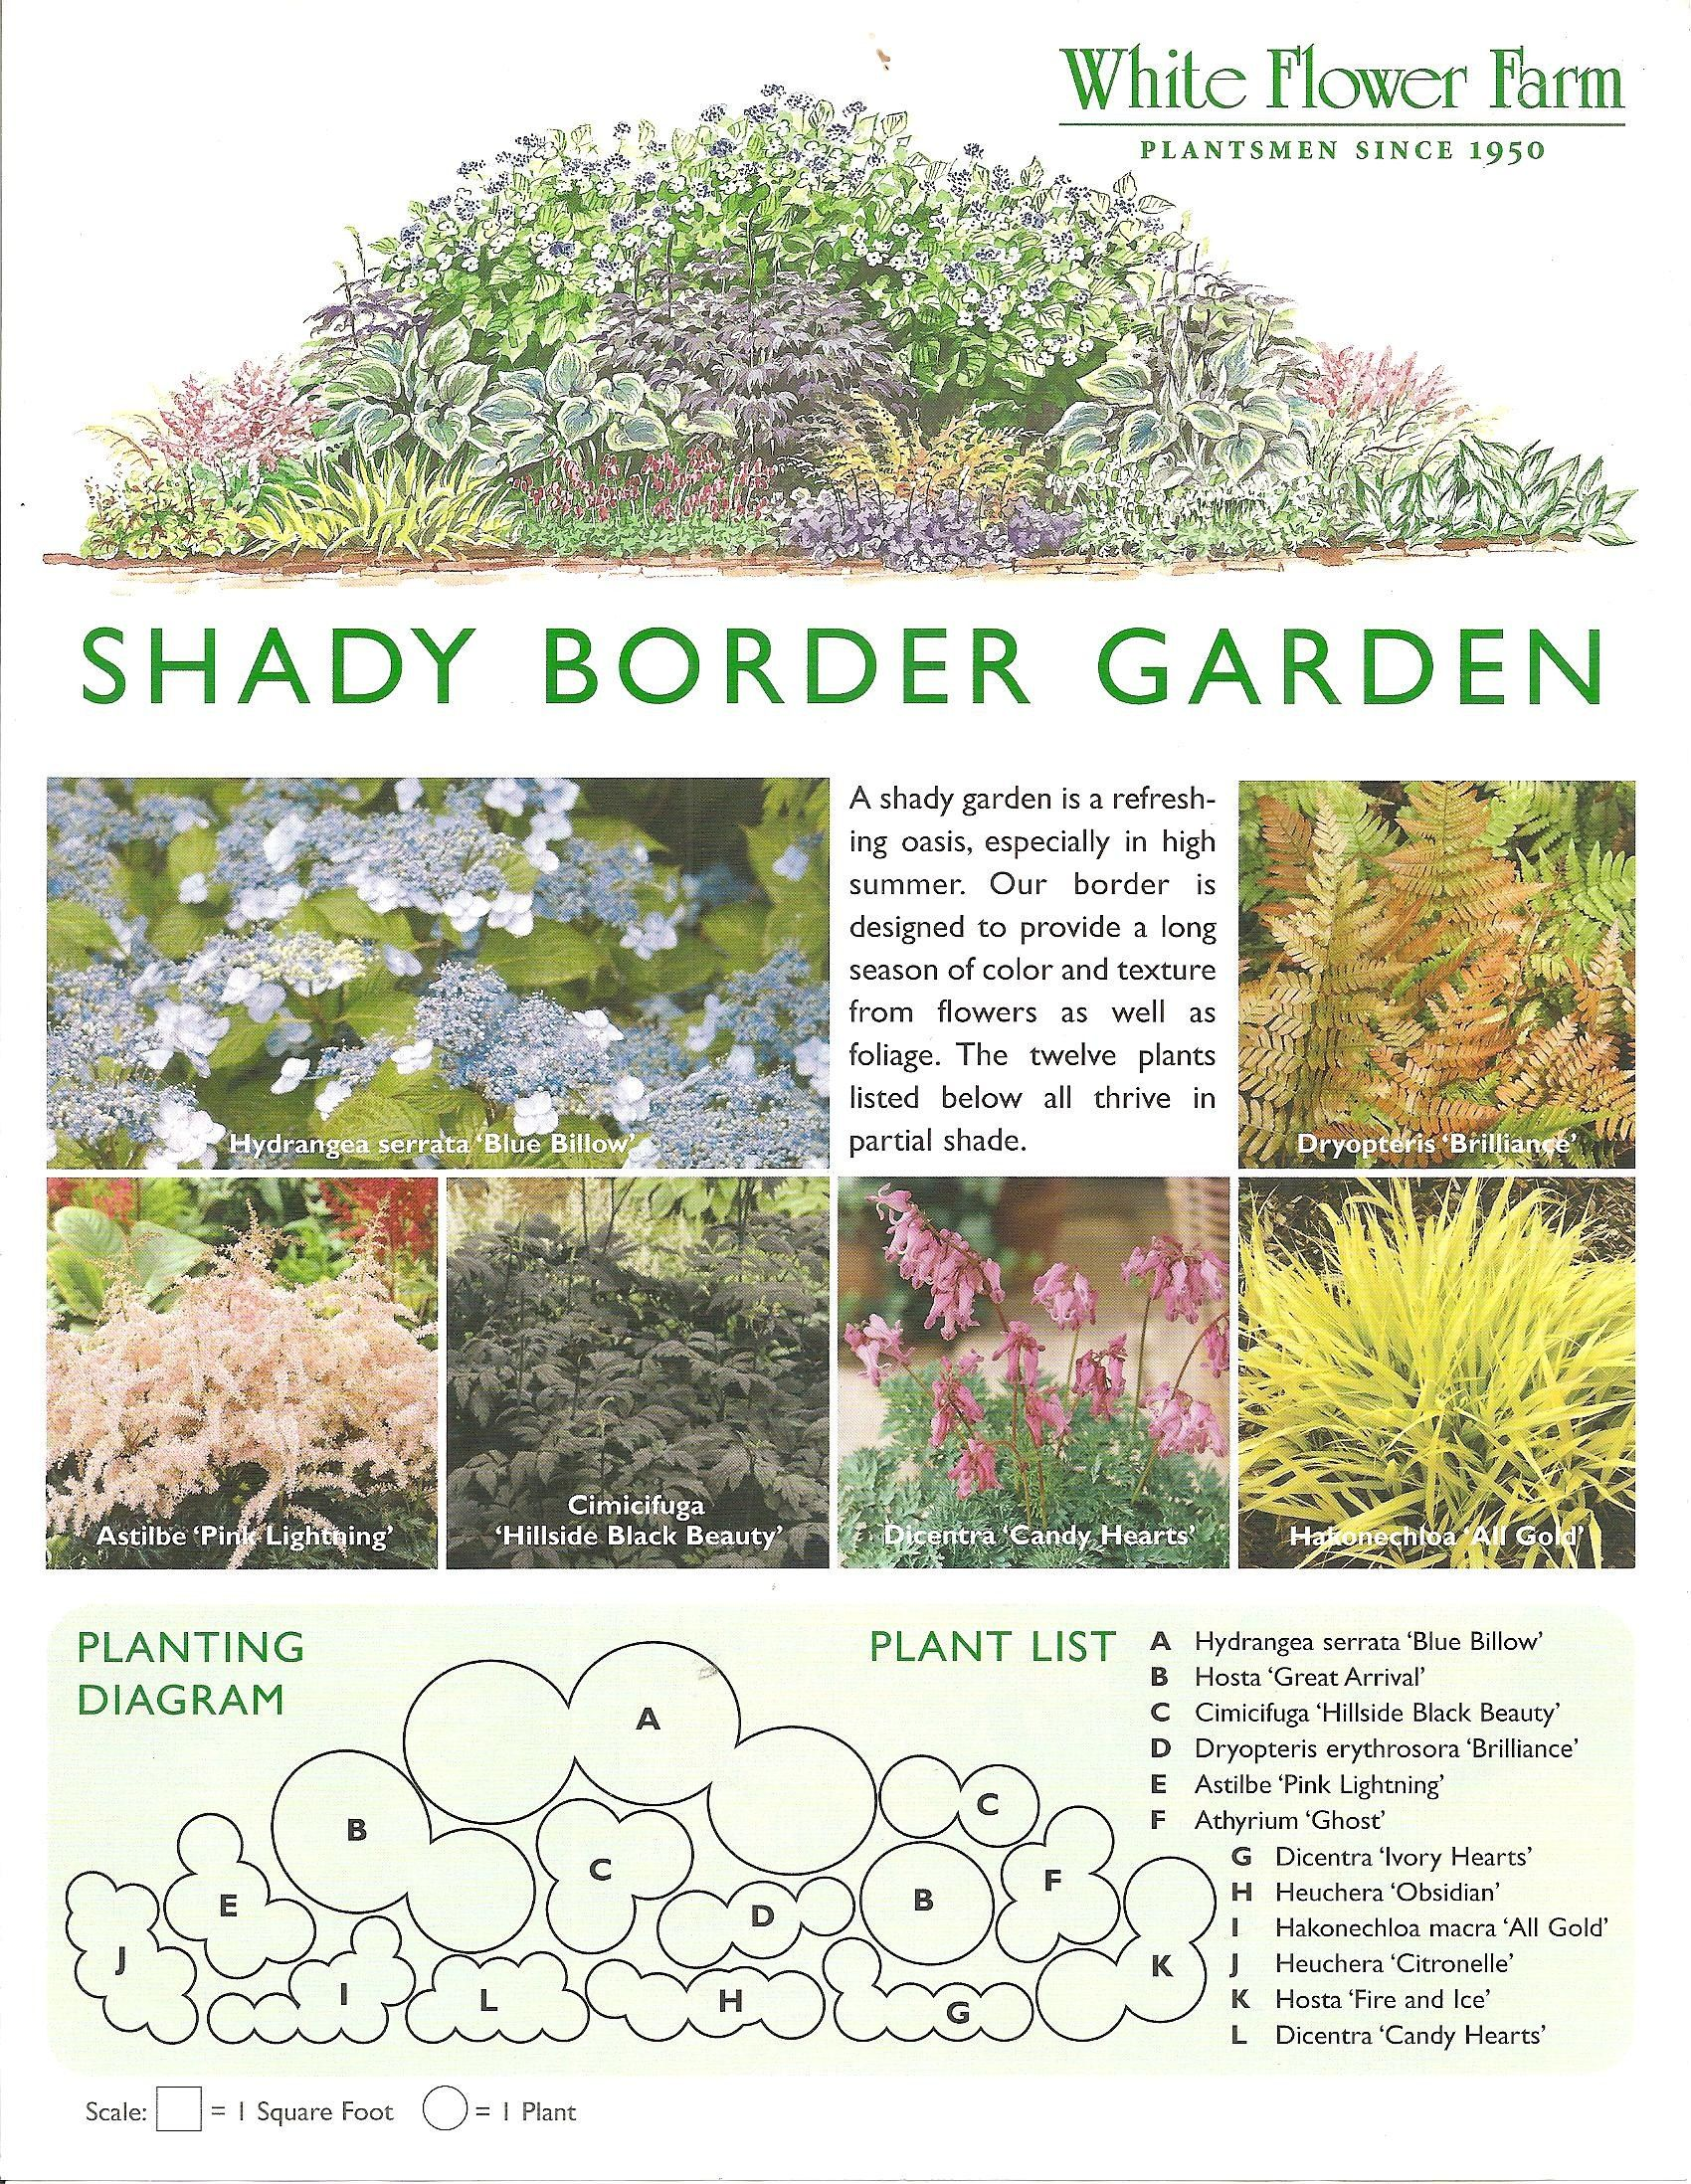 Shady Border Garden Plan from White Flower Farm Border plan is